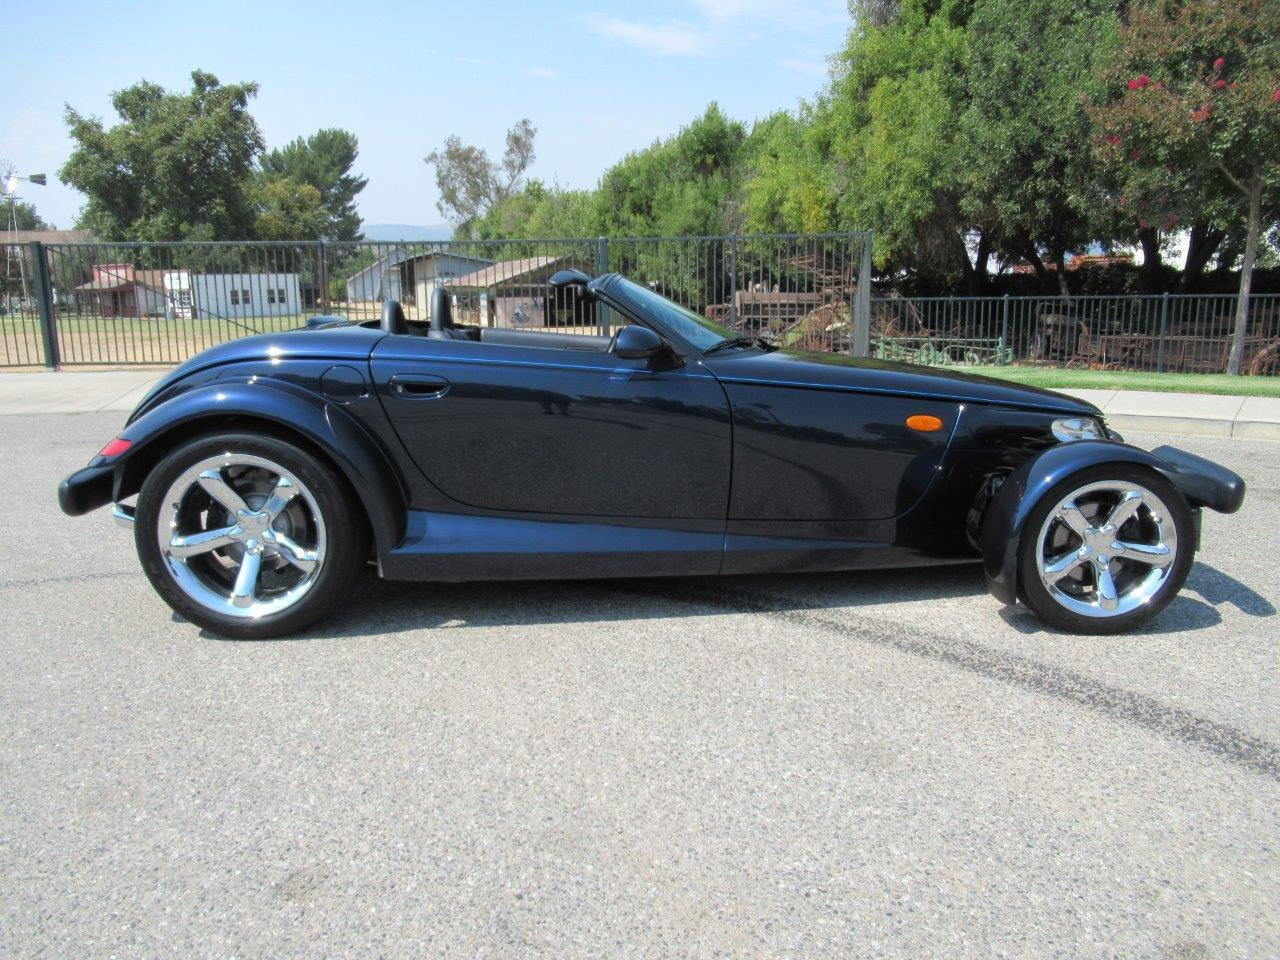 2001 Chrysler Prowler (CC-1382540) for sale in Simi Valley, California